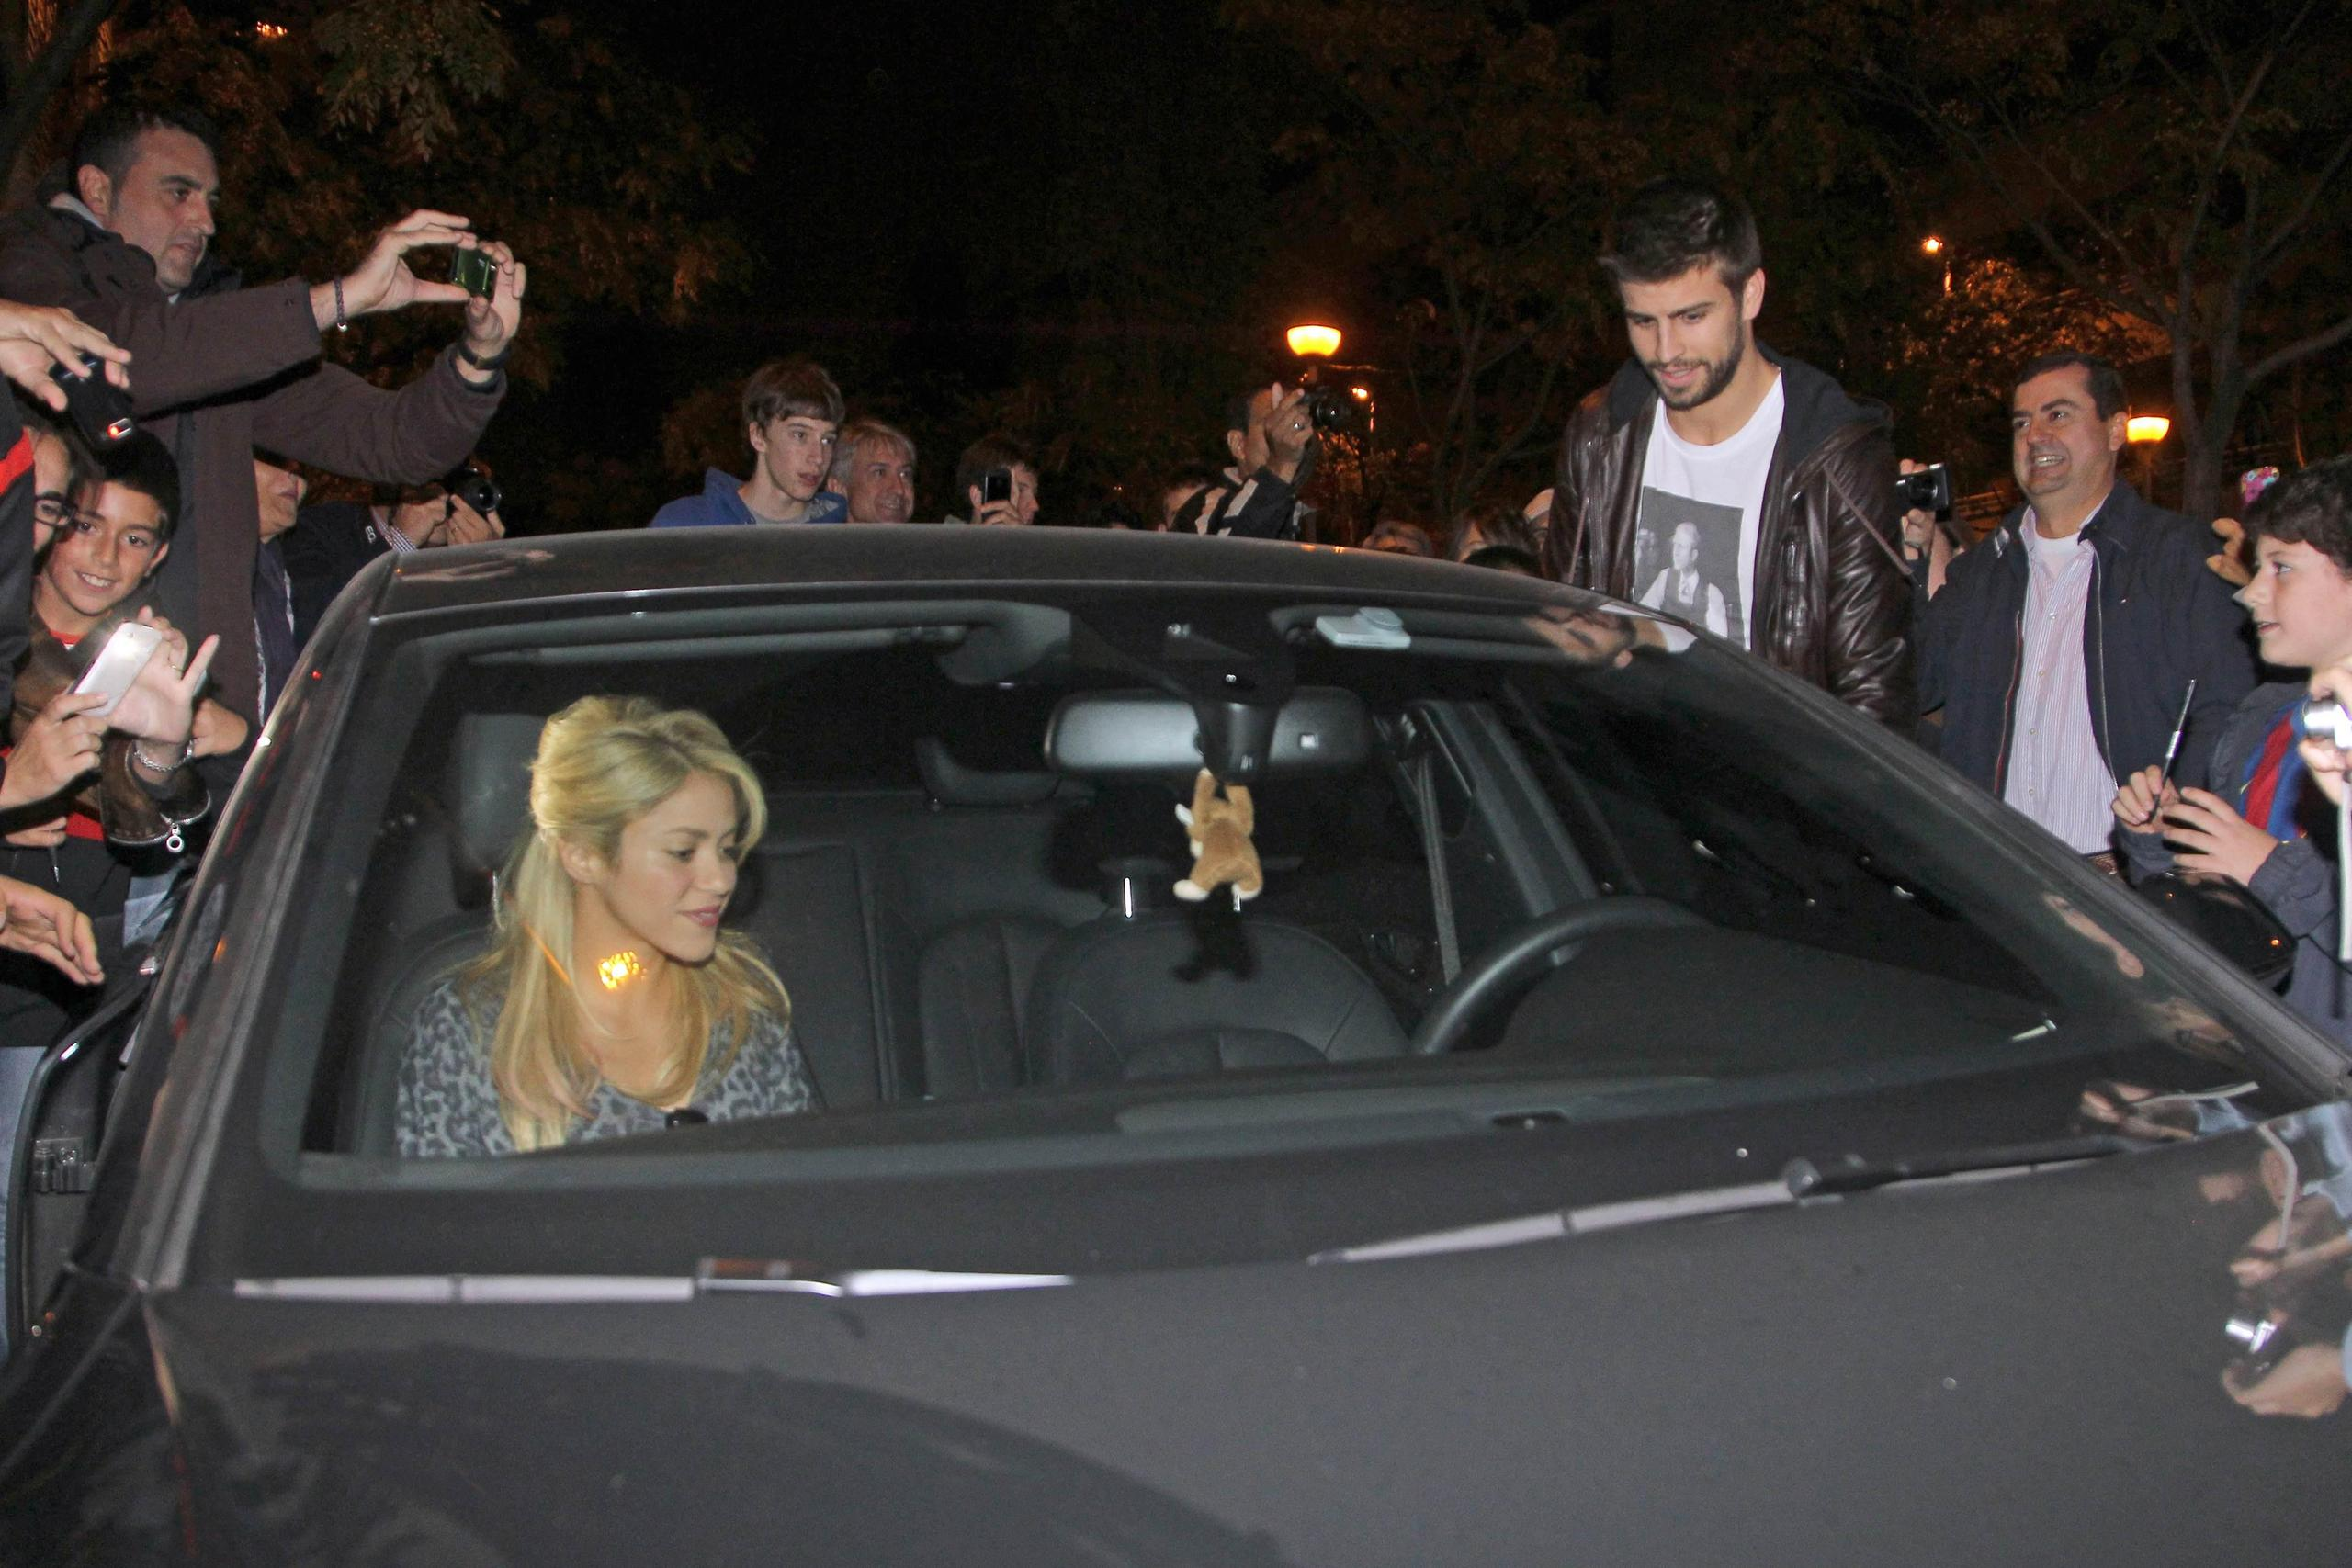 Shakira and Pique. - Page 3 Shakira-and-piqu-car-big-picture-gerard-pique-27488248-2560-1707